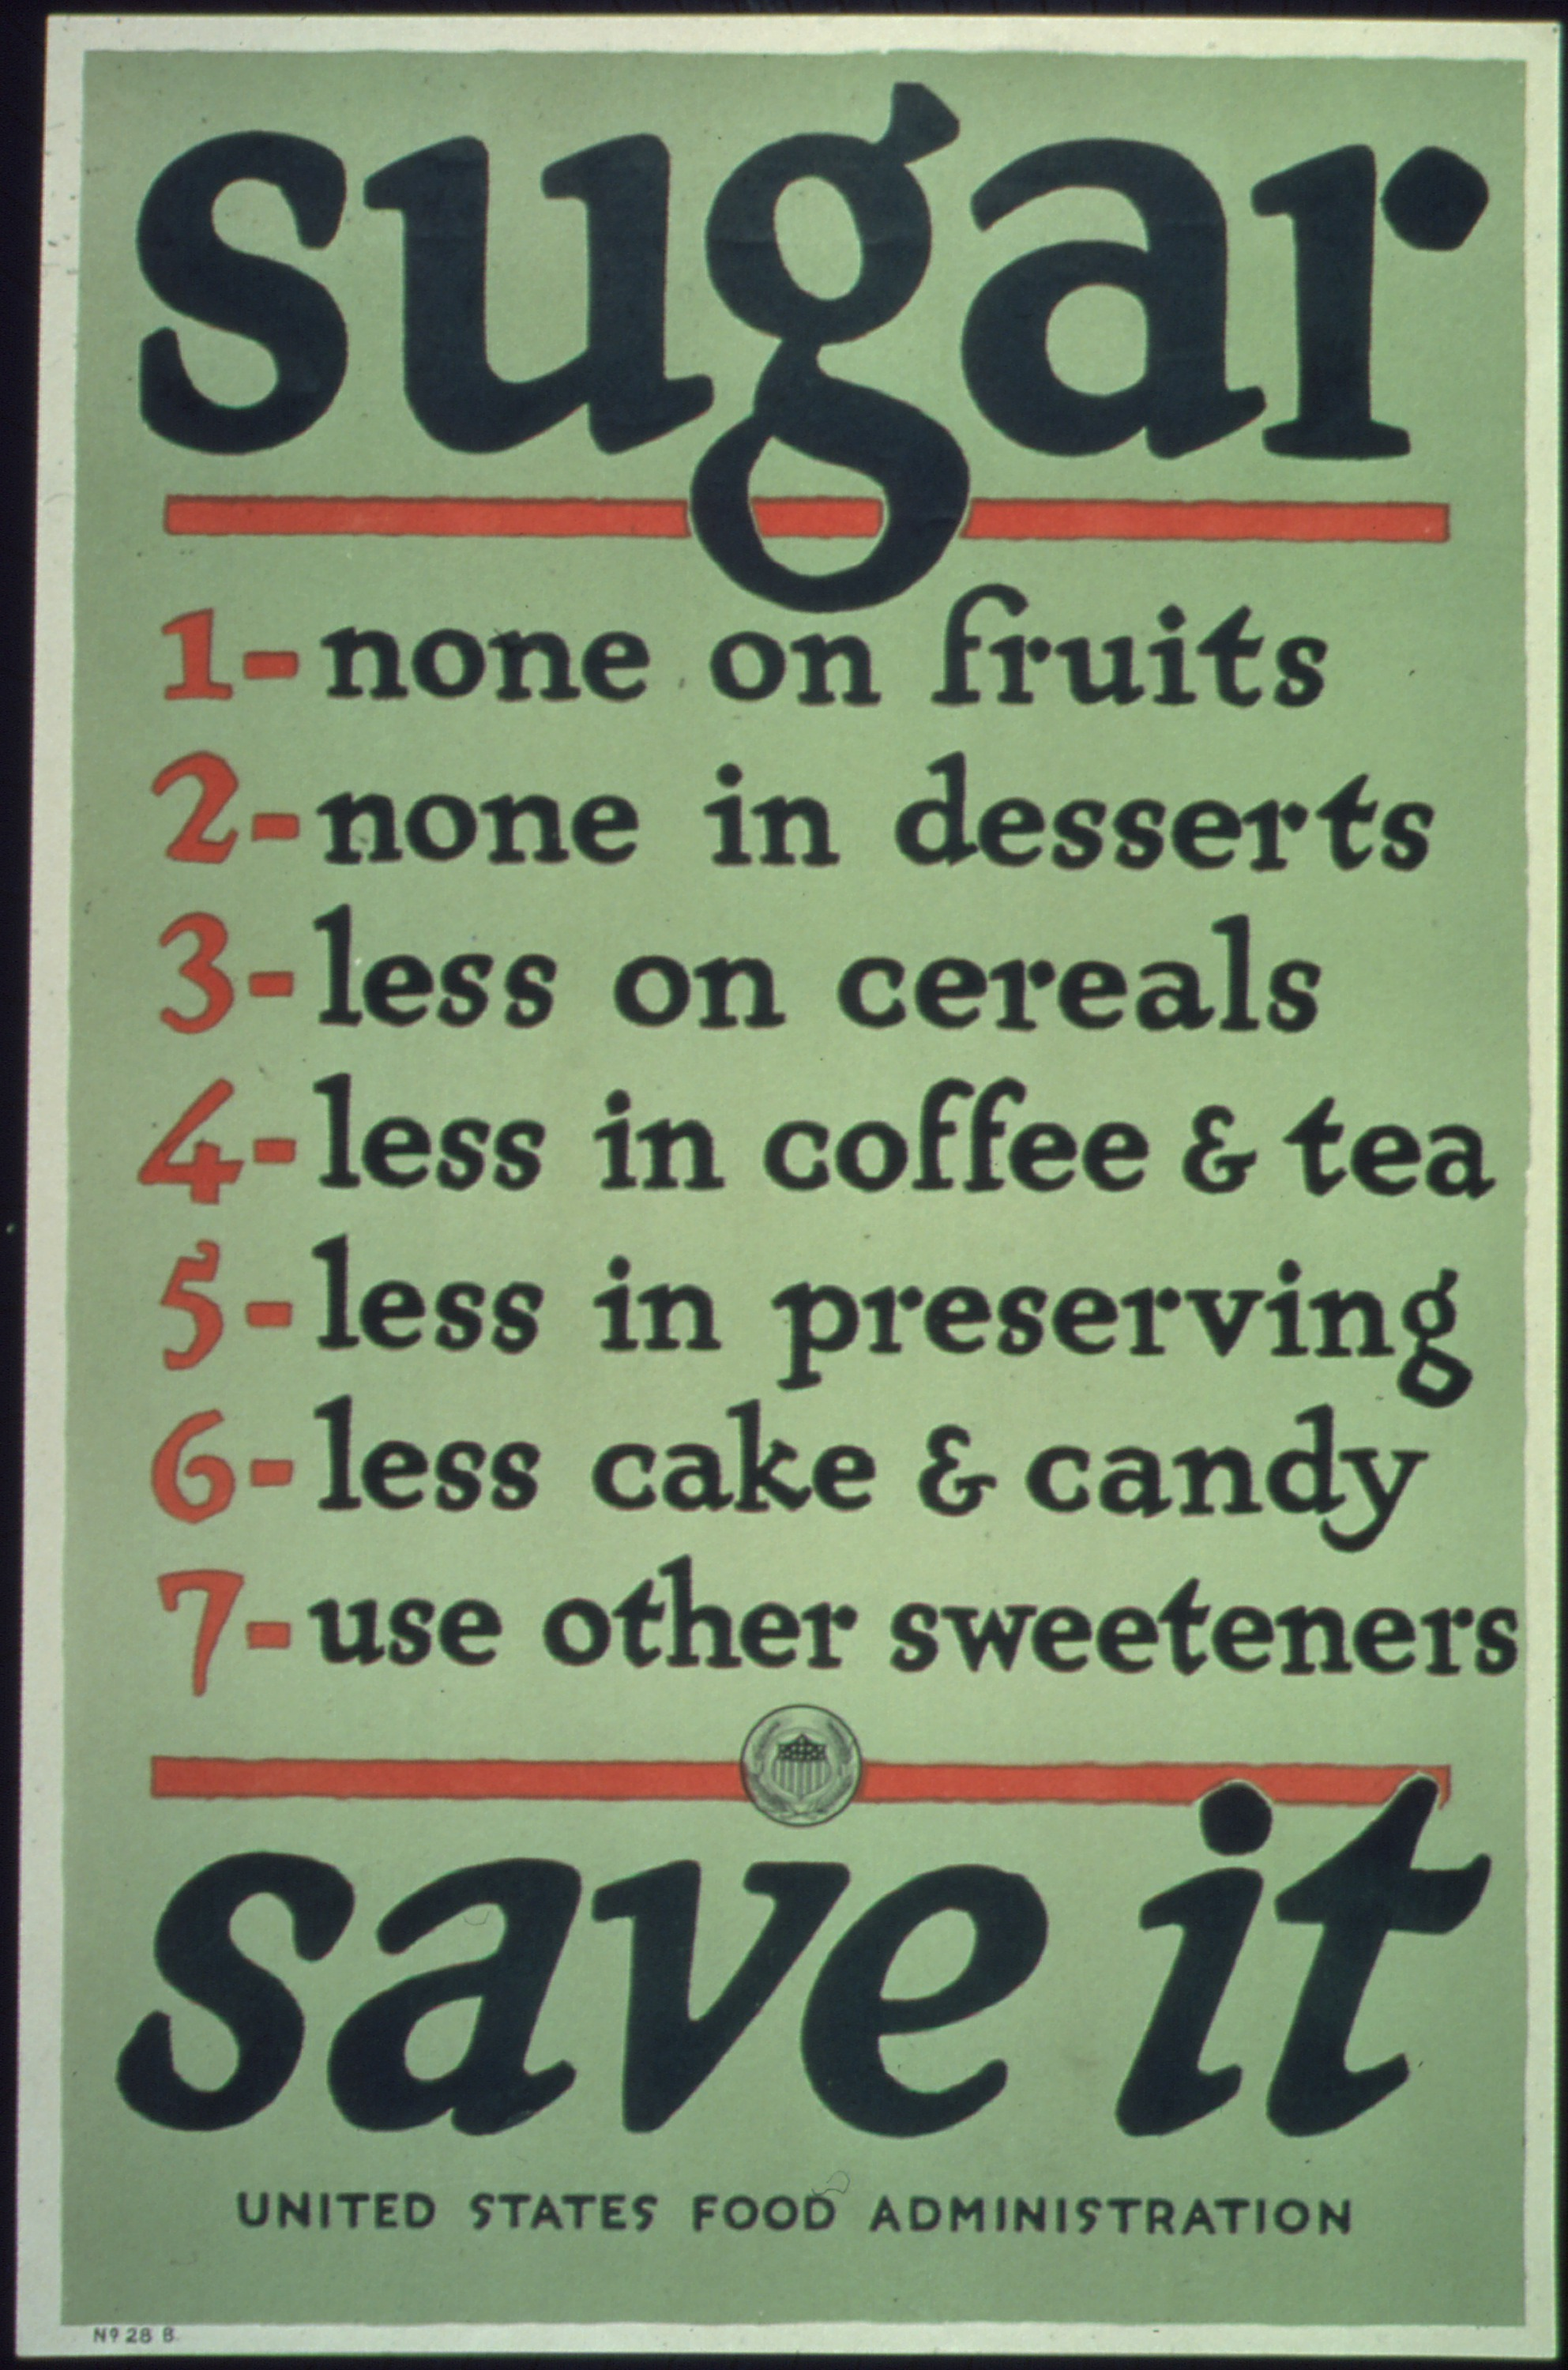 File:Sugar. 1- none on fruits, 2- none in desserts, 3- less on cereals ... Agricultural Adjustment Act Posters